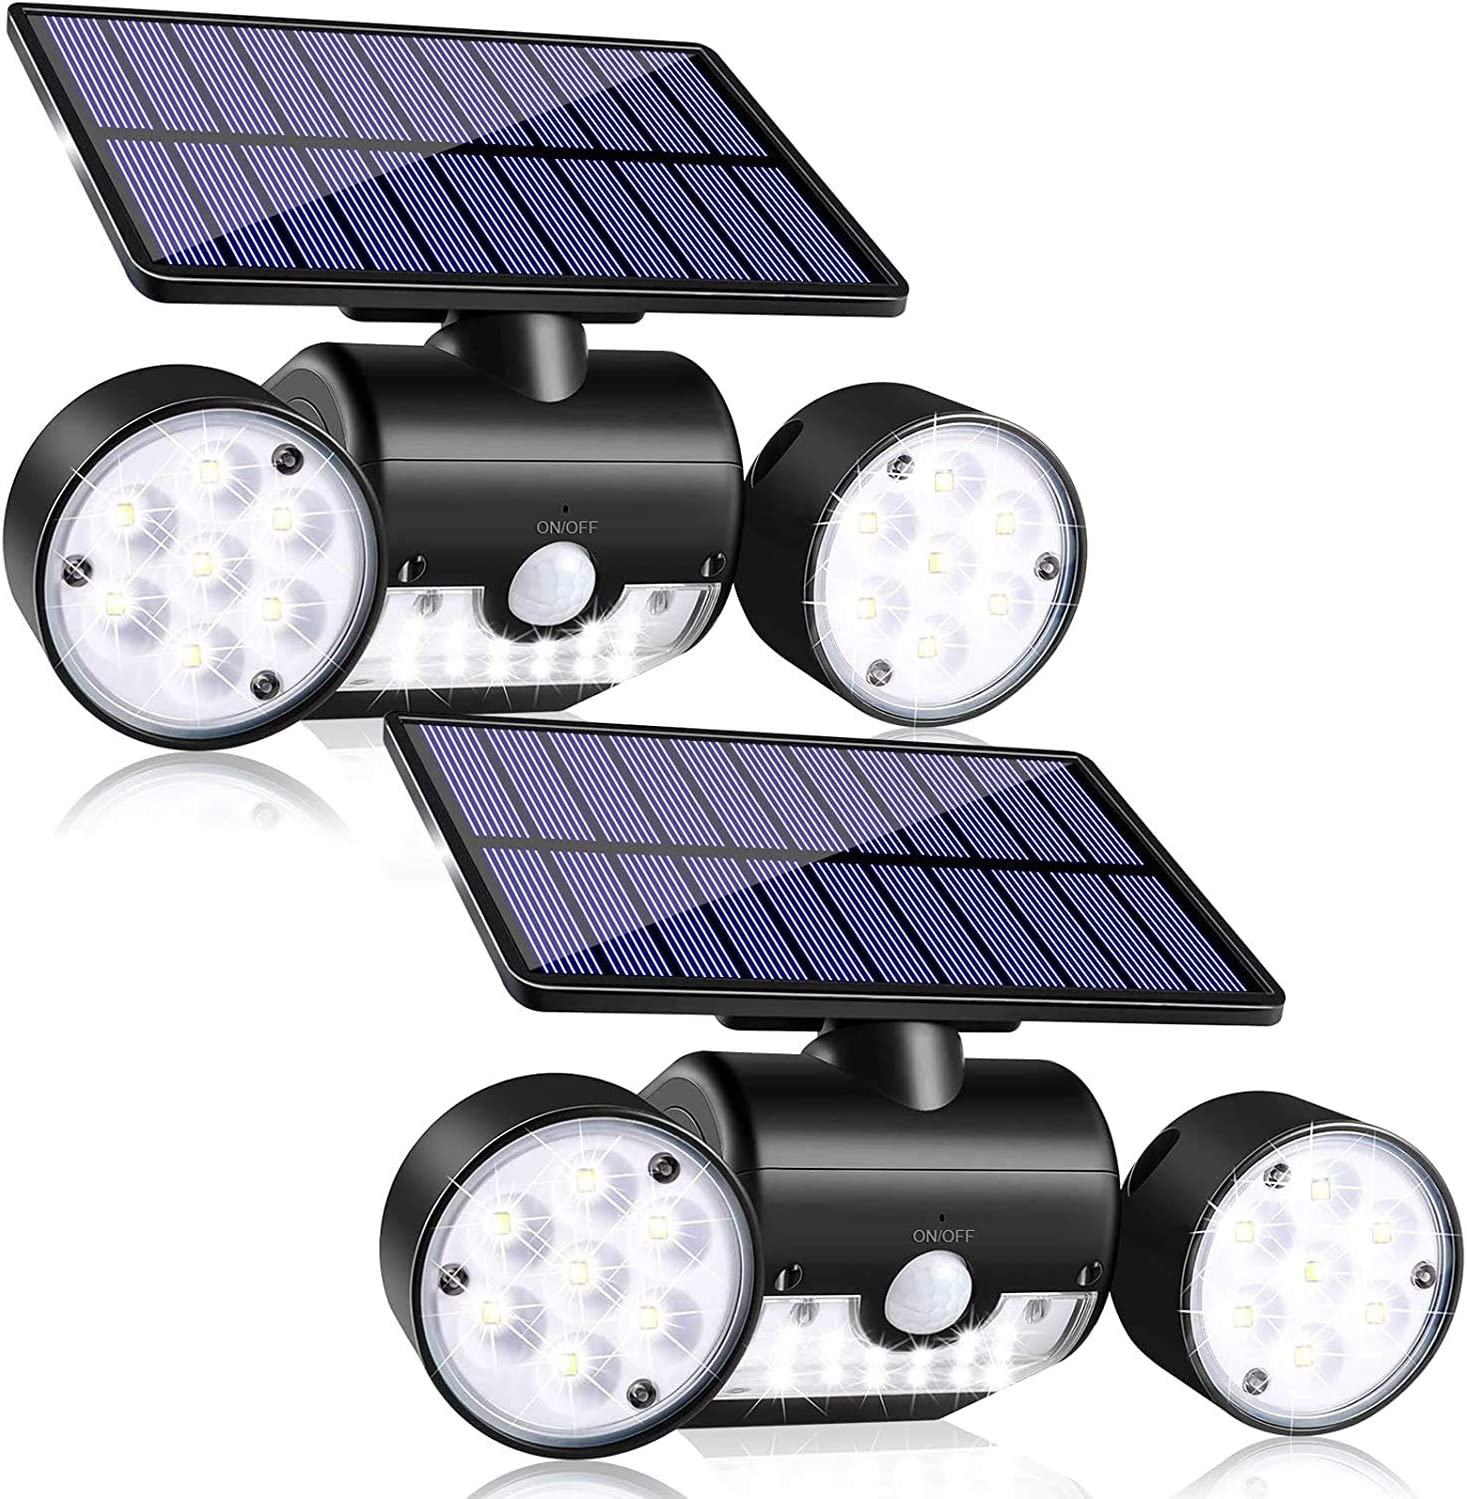 Amazon Com Copeak Solar Light Outdoor With Motion Sensor 30 Led Solar Powered Wall Light With Dual Head Spotlights Waterproof 360 Degree Rotatable Solar Security Night Light Outdoor For Garden 2 Pack Home Improvement